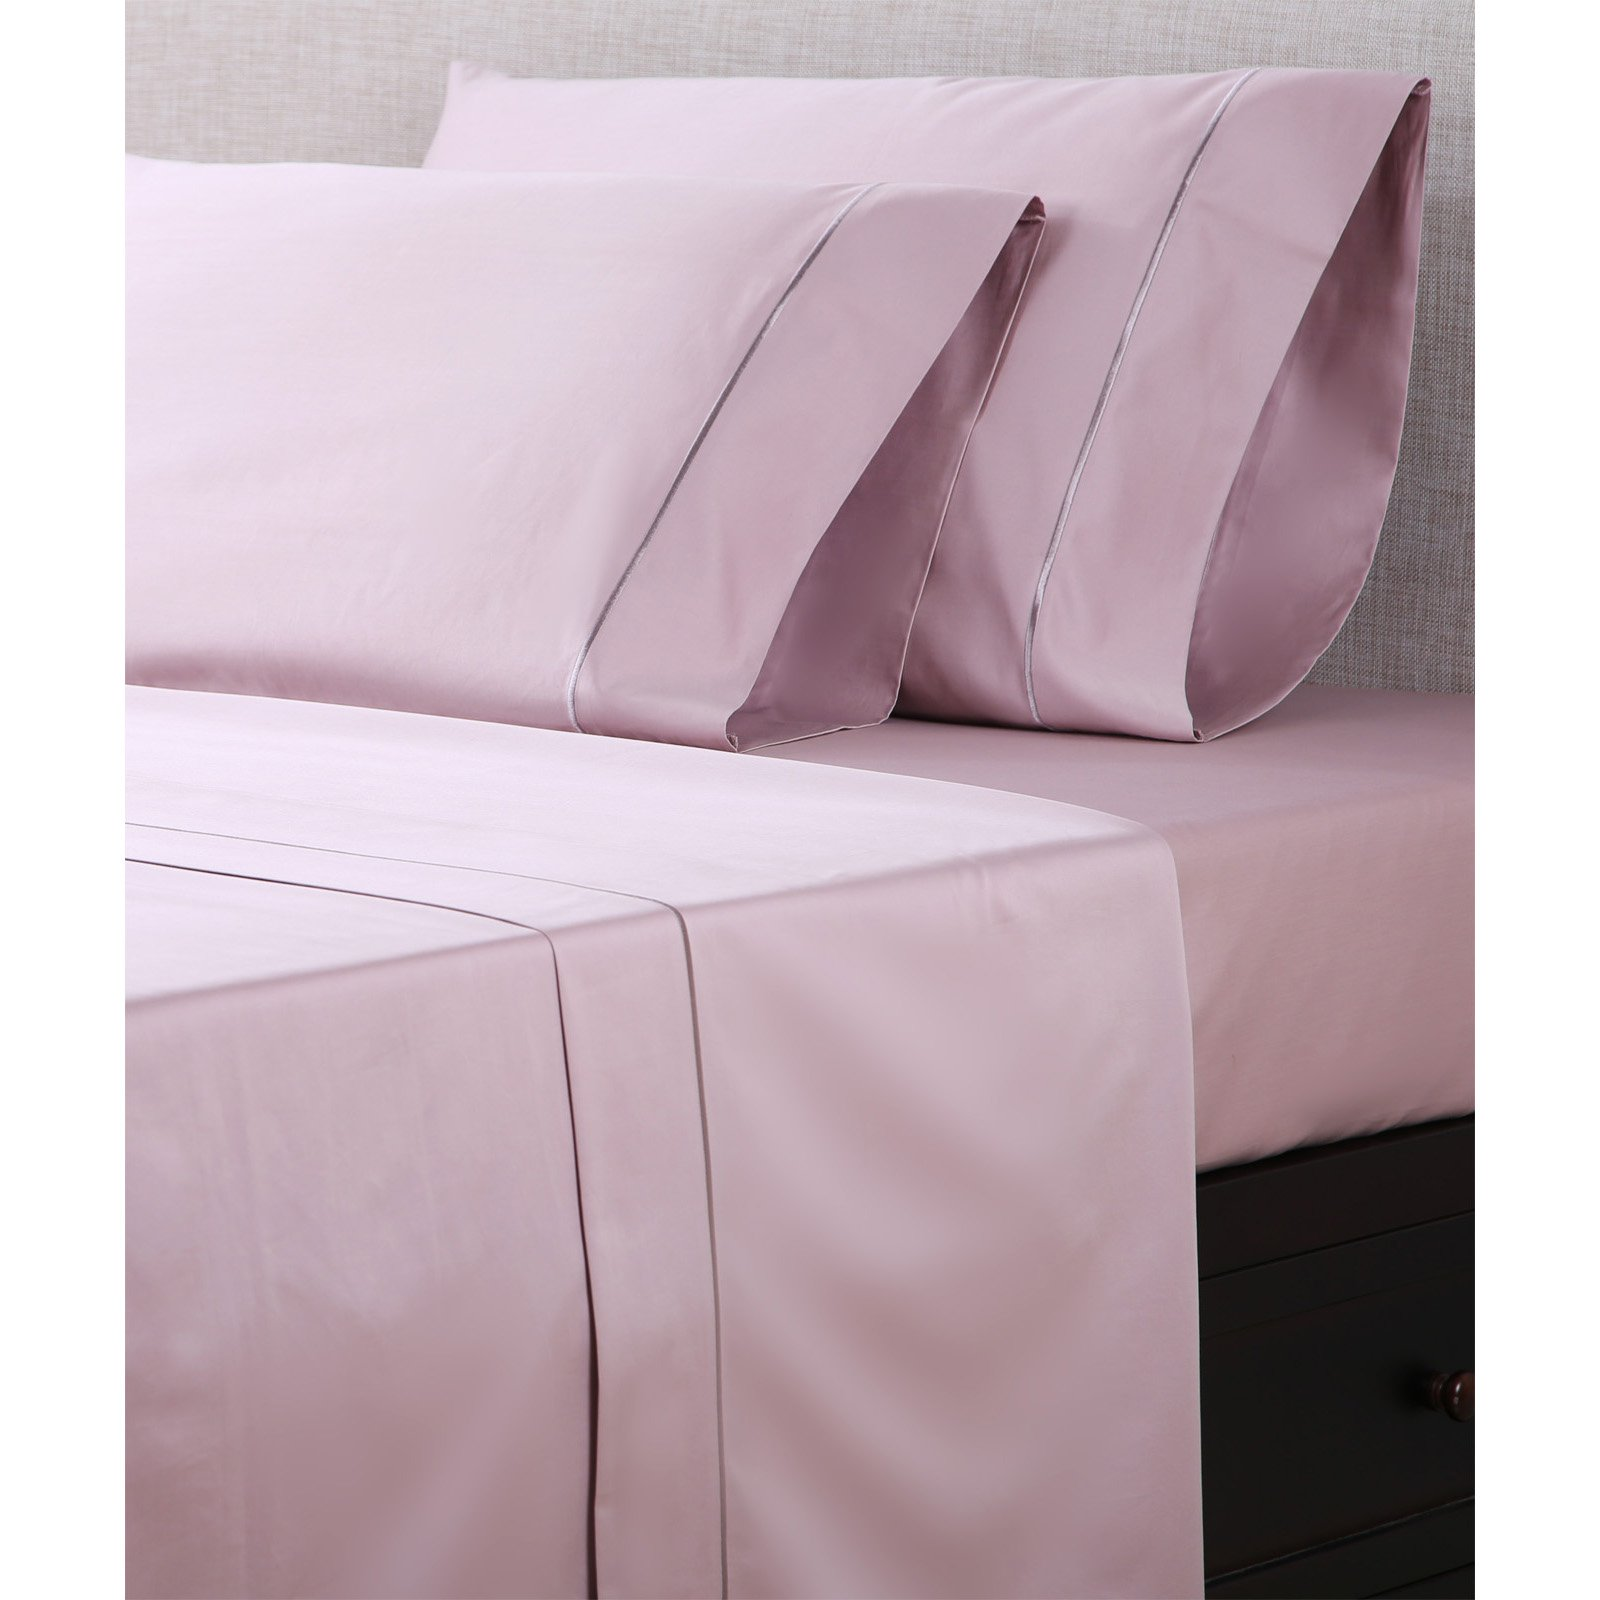 Radiant 1000 Thread Count Sheet Set by Affluence